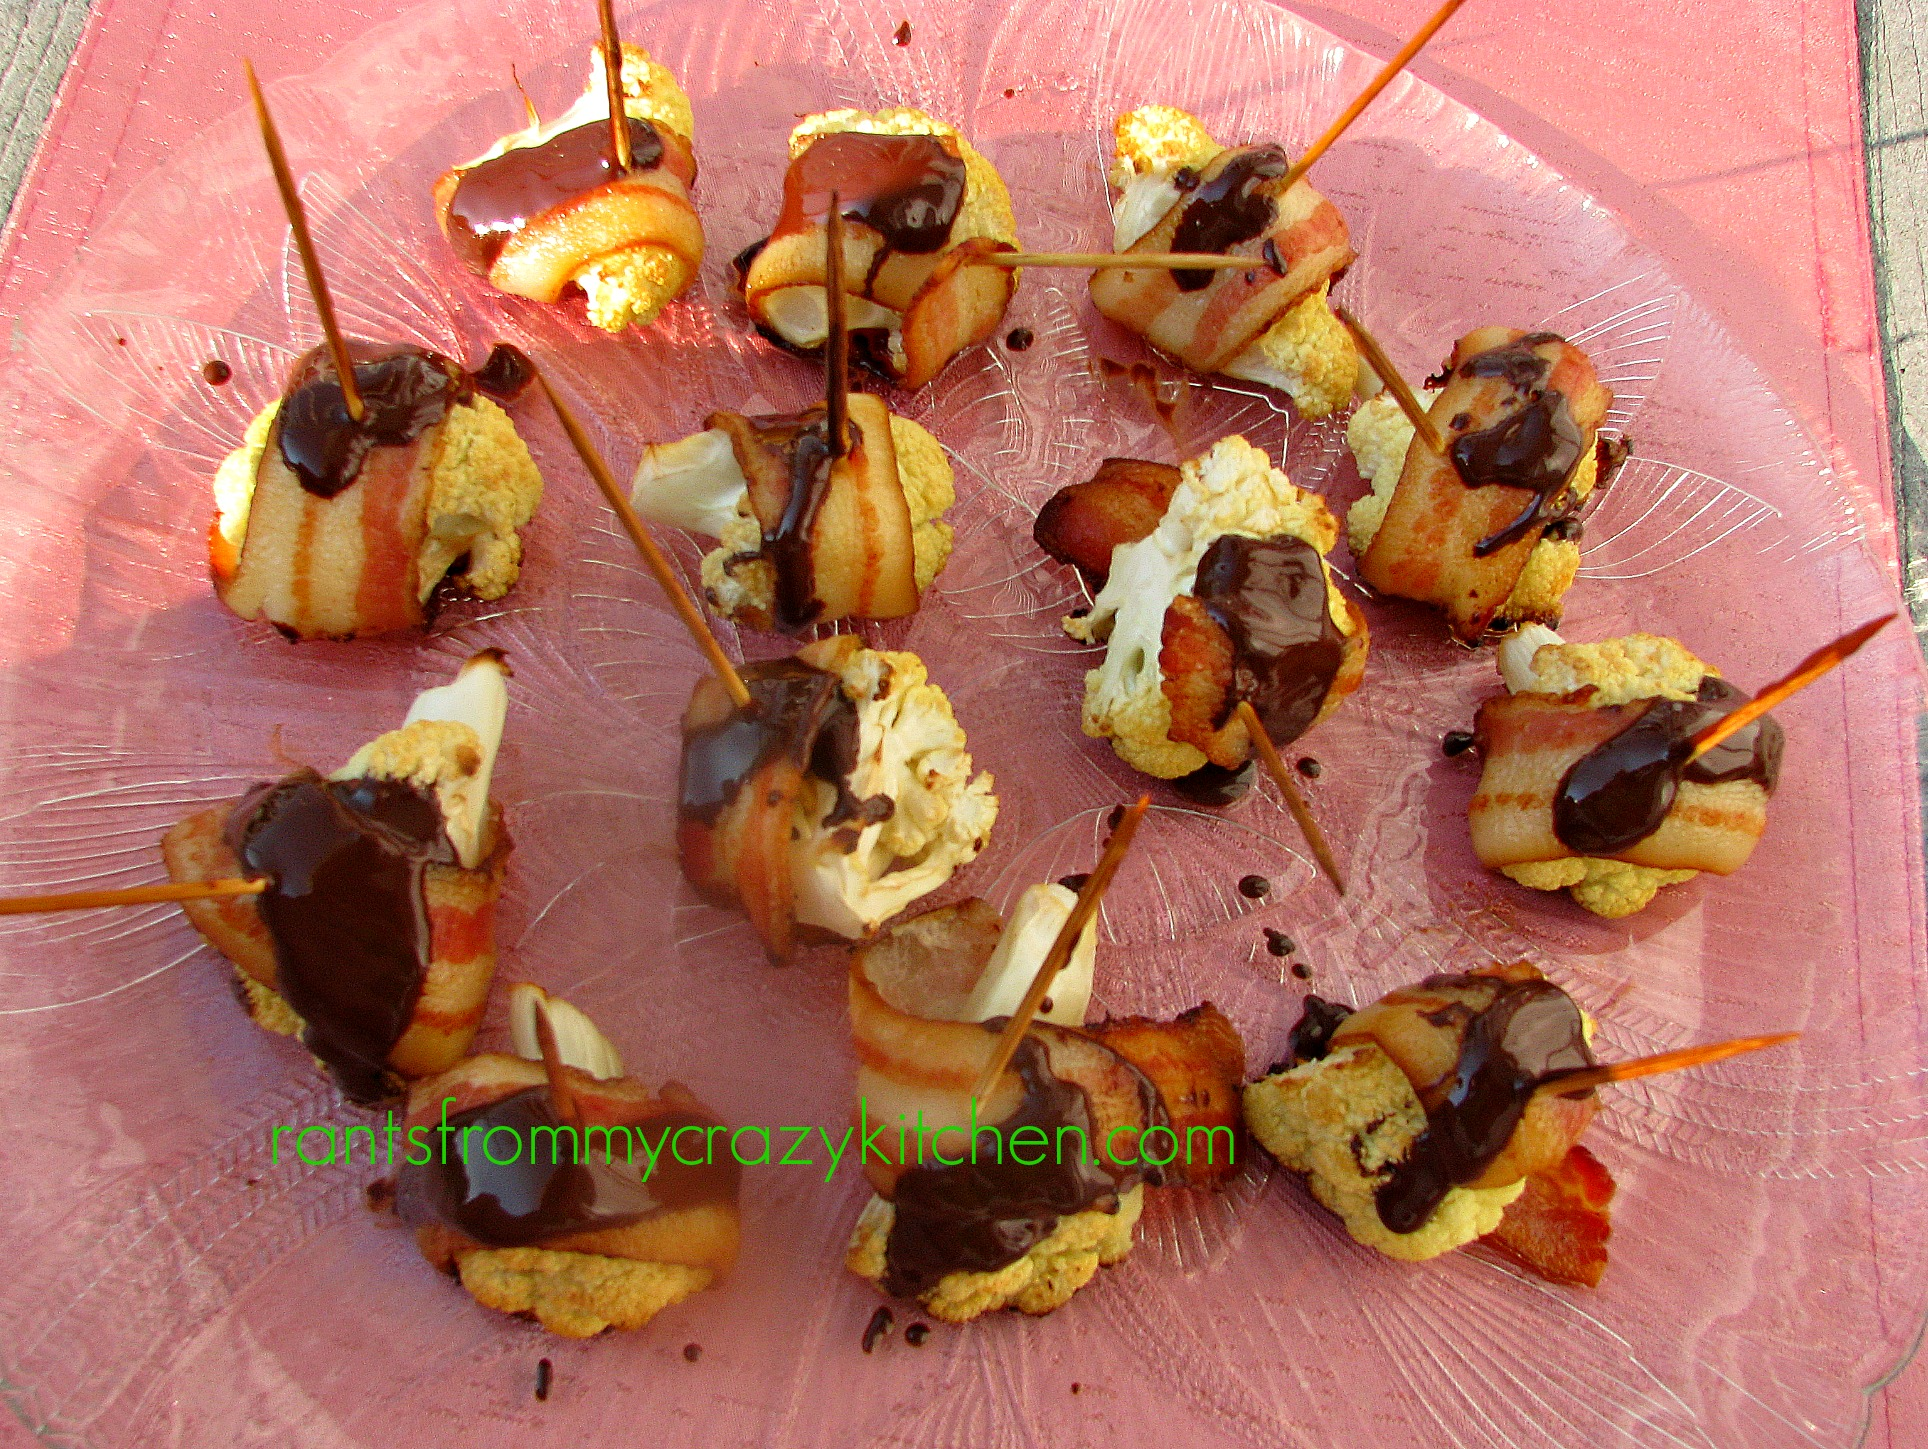 Bacon Wrapped Cauliflower With Dark Chocolate makes a unique appetizer or side dish.